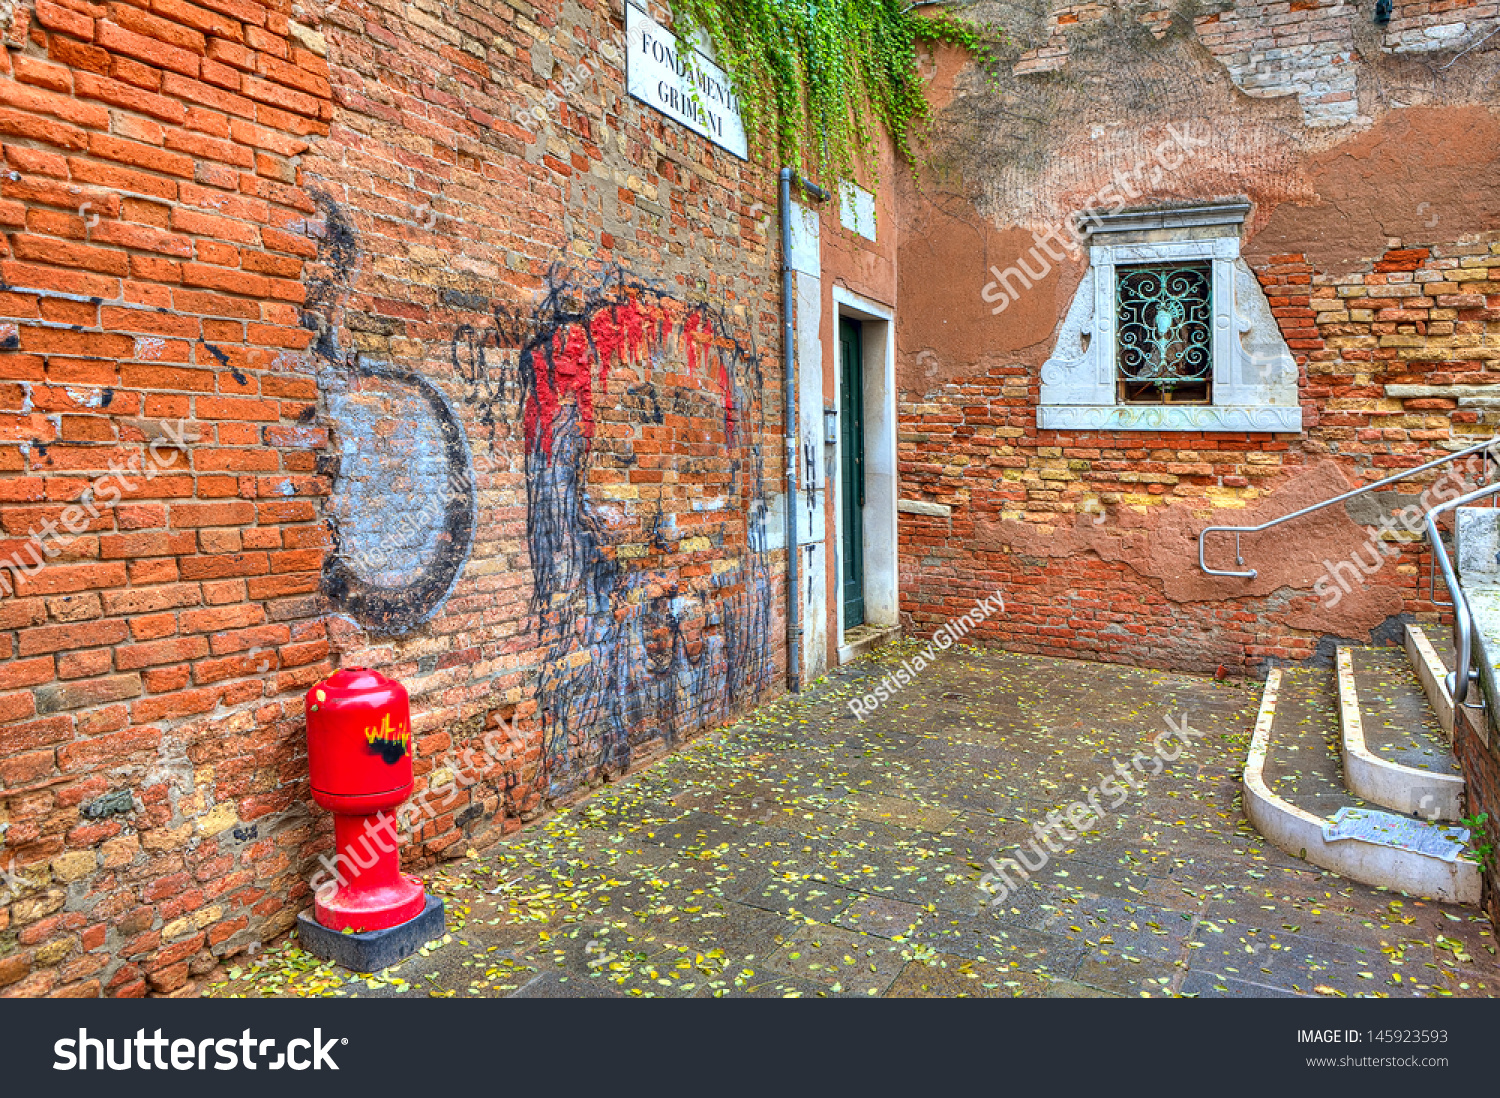 Grafiti wall red - Small Courtyard Among Old Red Brick Walls With Graffiti In Venice Italy